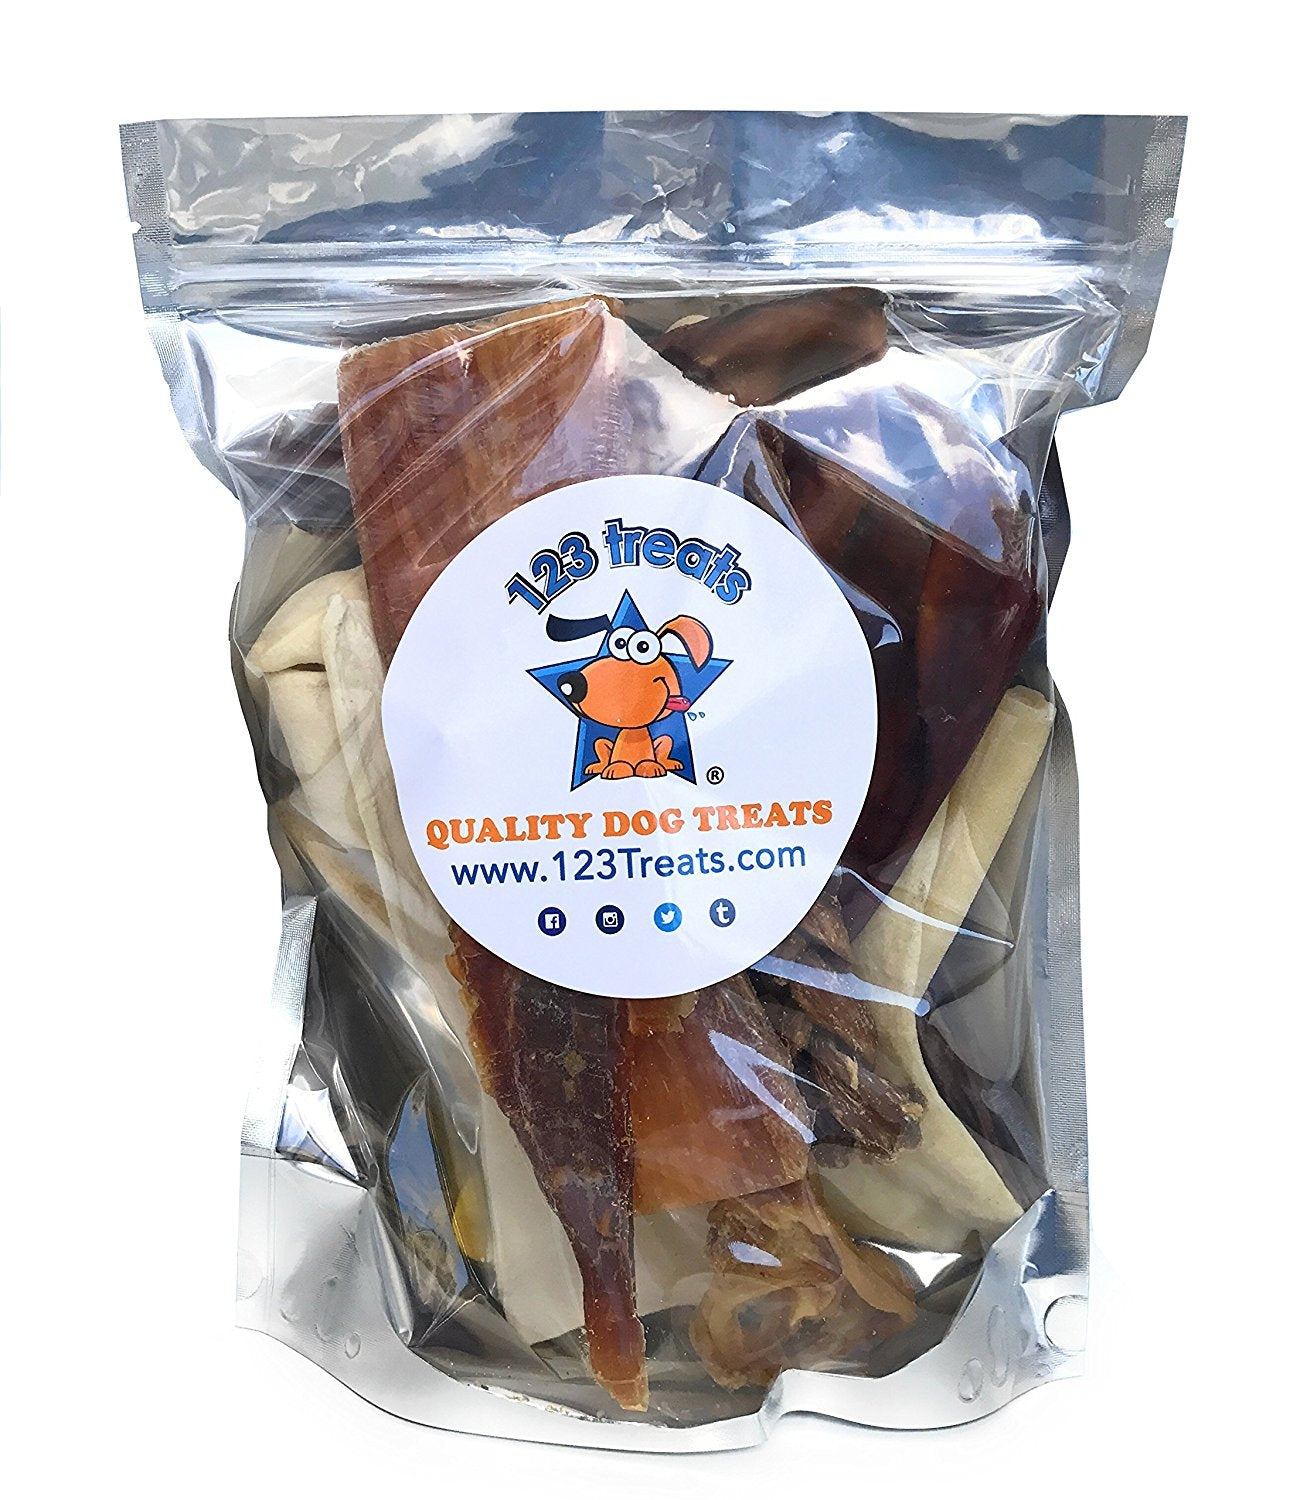 8 oz Assorted Dog Chews Bulk Delicious Natural Chews for Dogs - Mix dog treats from 123 Treats